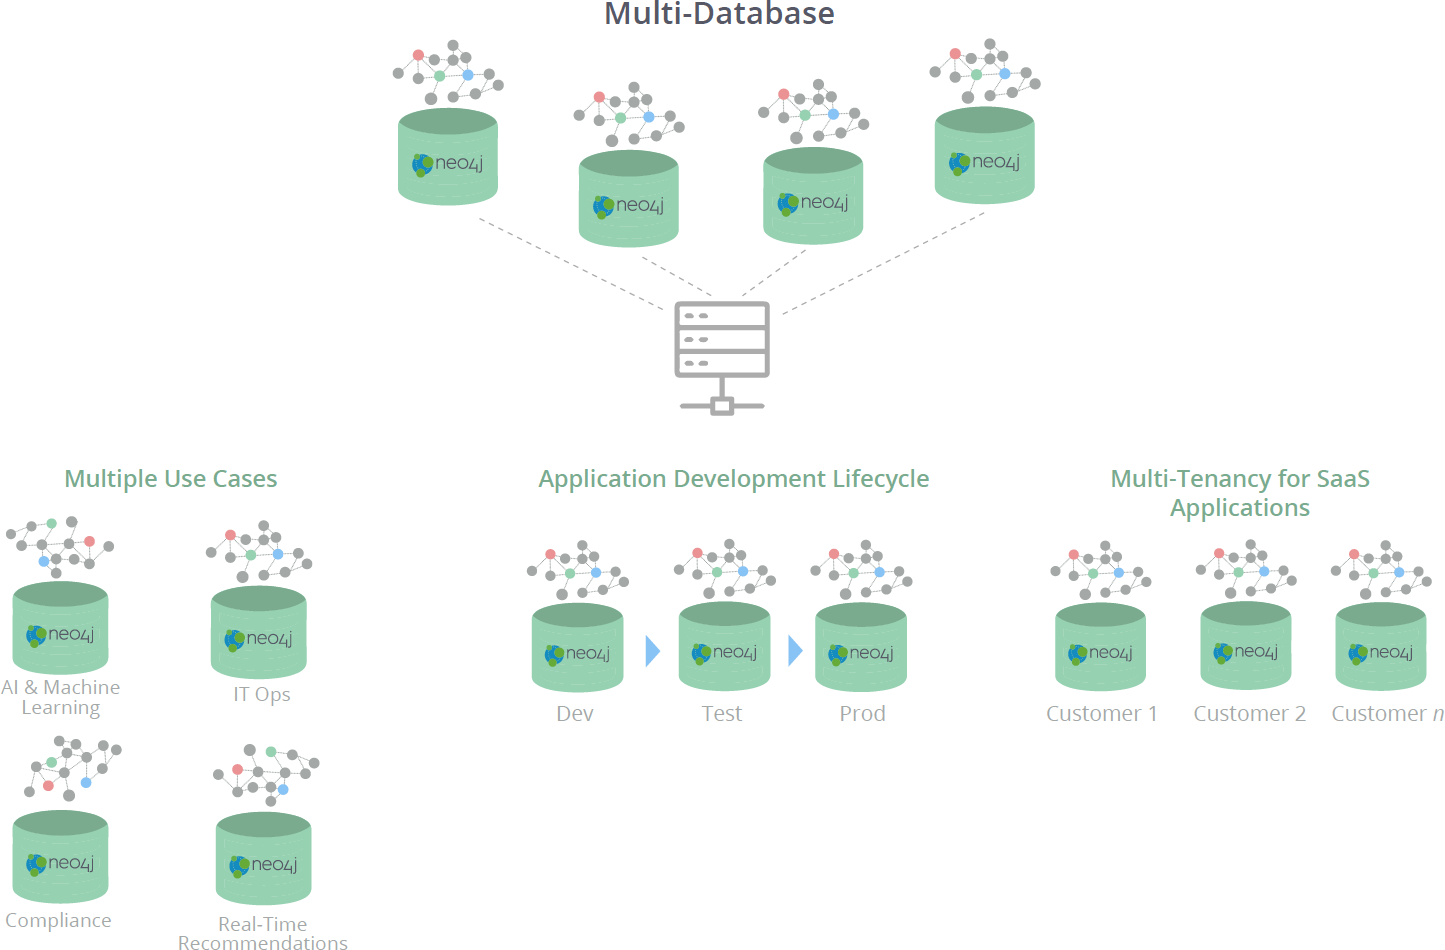 Neo4j Multi-Database